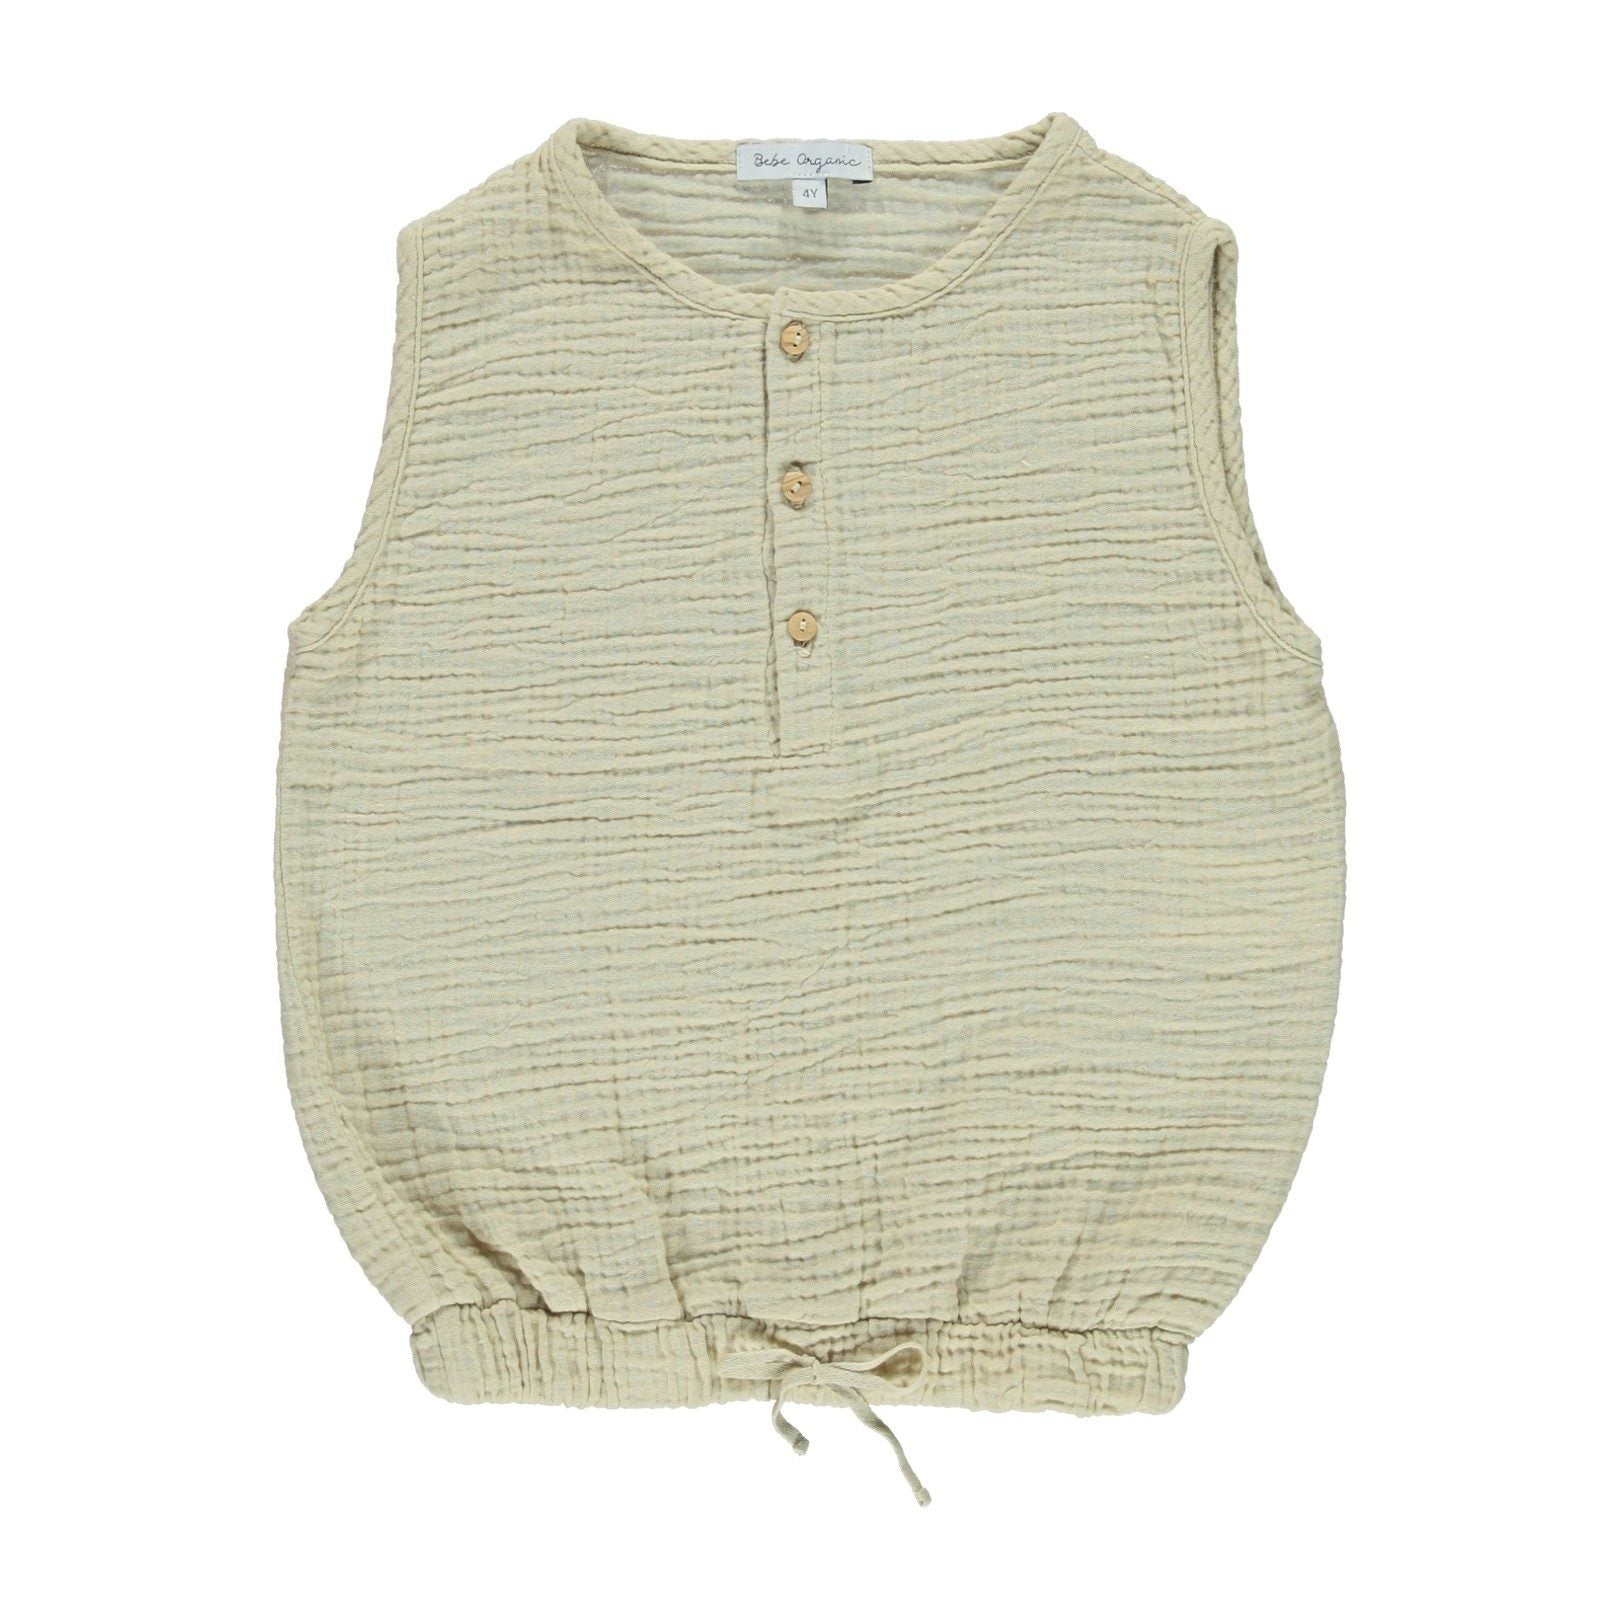 BEBE ORGANIC 'OTTO' TANK , TAUPE - Spinel Boutique